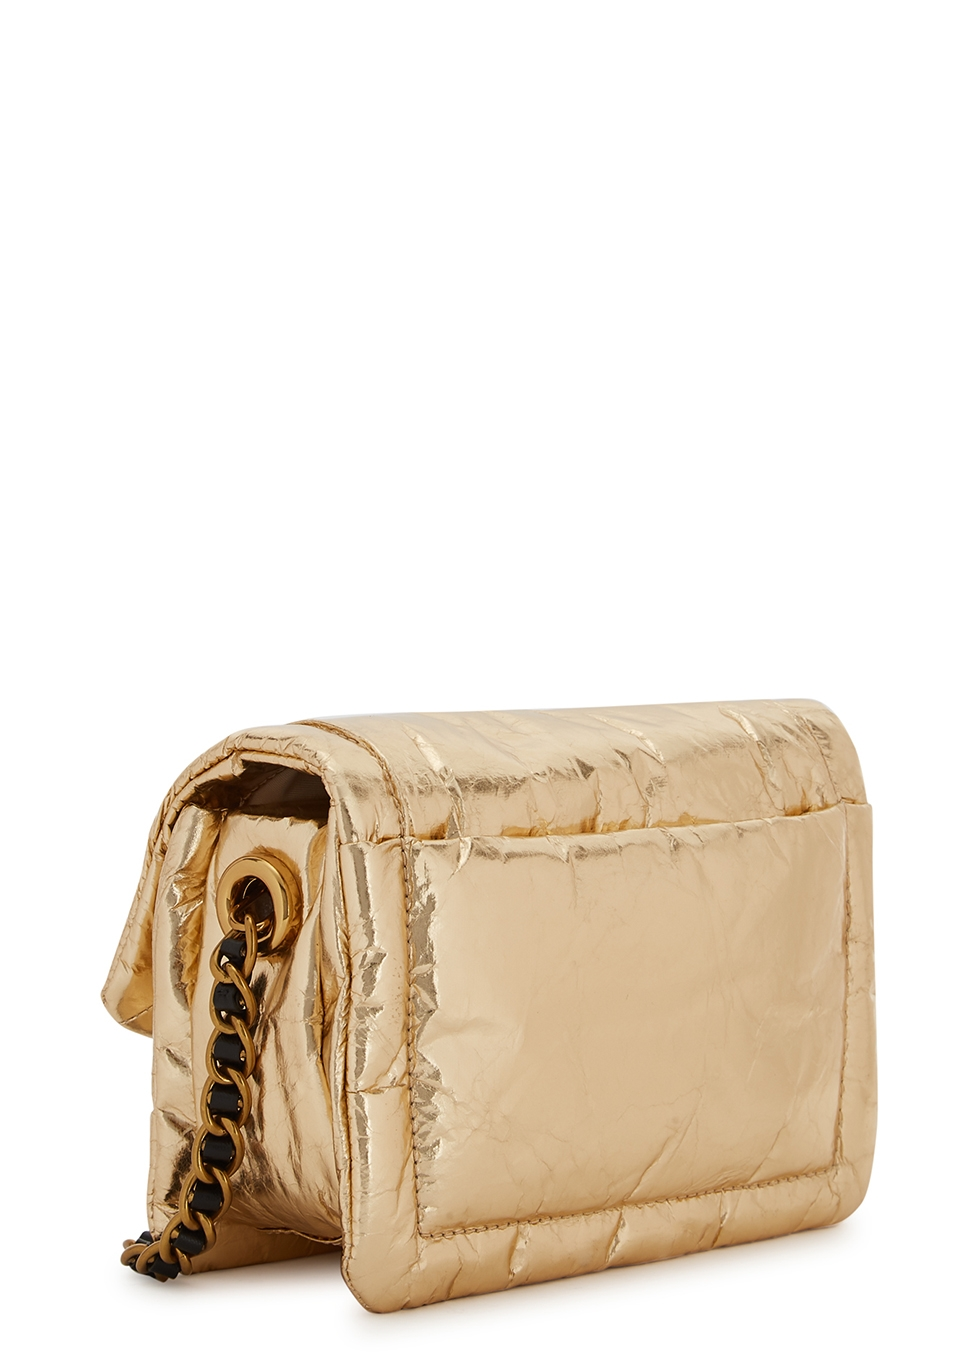 Marc Jacobs The Mini Pillow gold cross